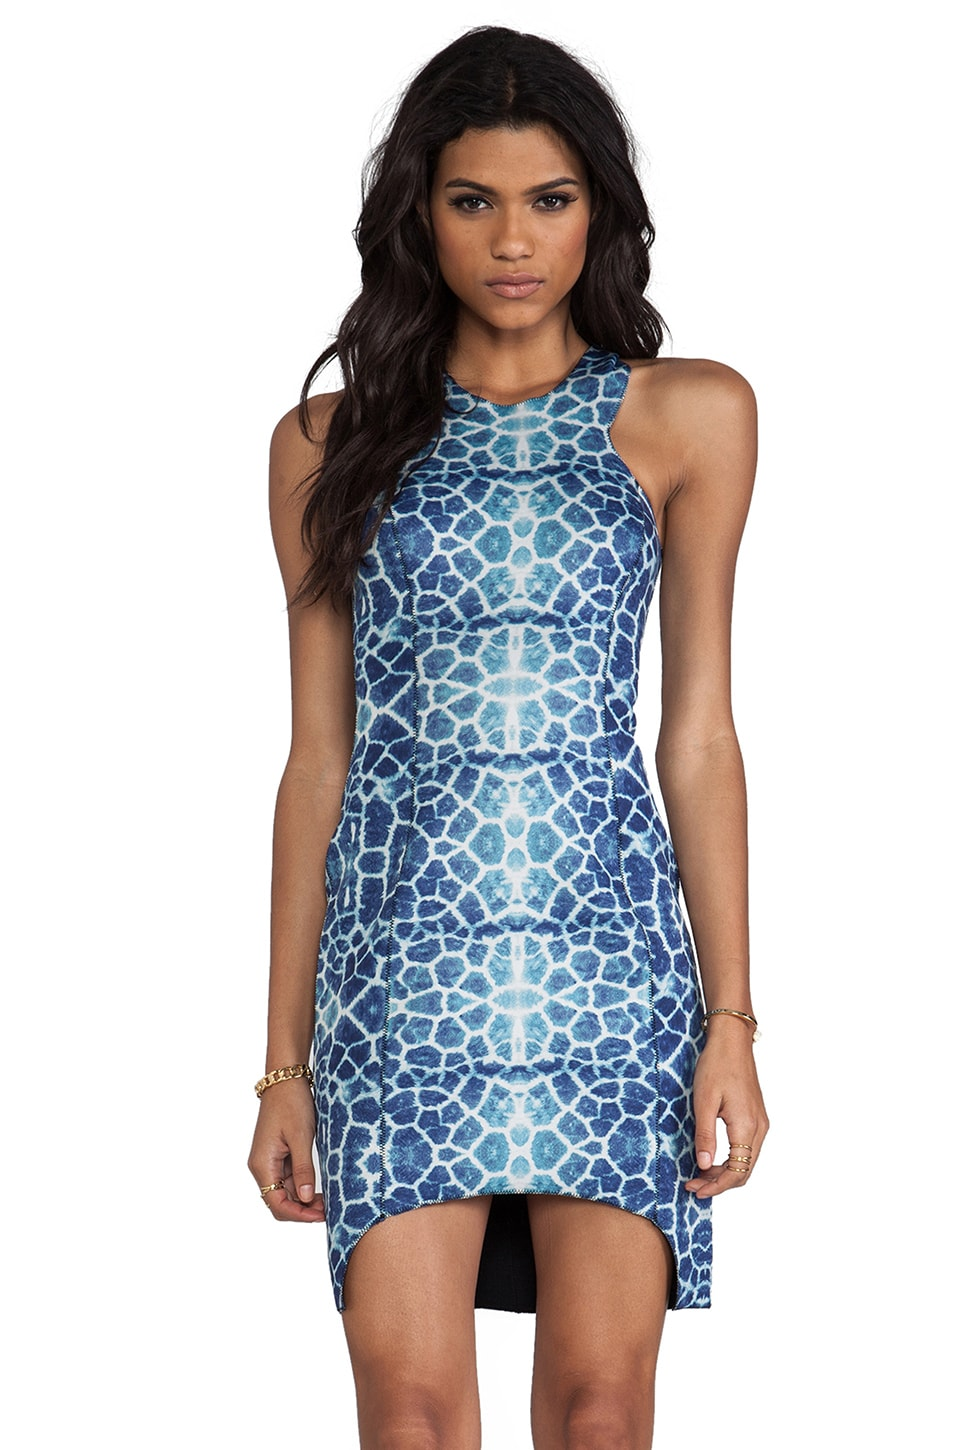 Shakuhachi Giraffe Racer Neck Dress in Giraffe Print